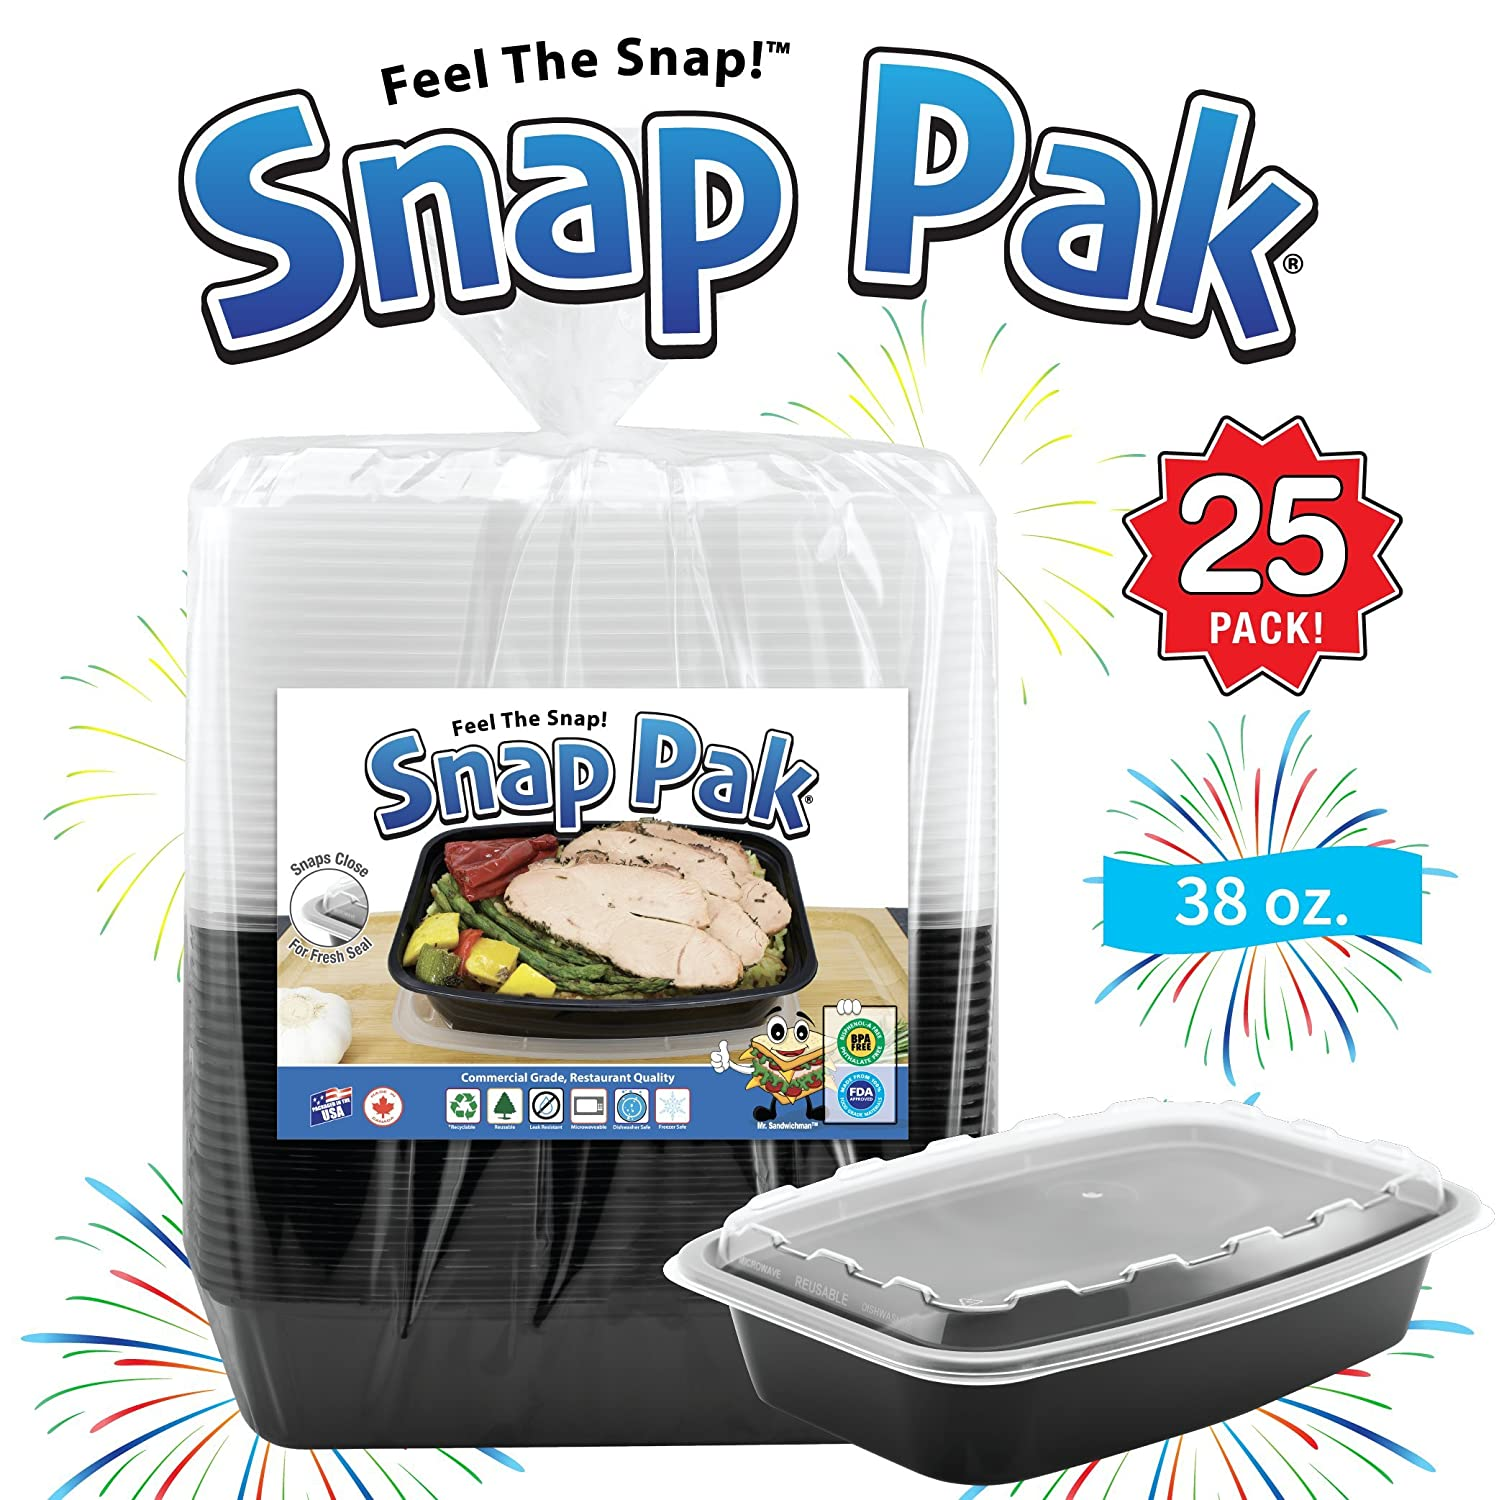 Snap Pak 12009 Storage Containers 38 oz. Clear Lid/Black Base BPA Free, Microwave, Freezer & Dishwasher Safe Air Tight Seal, Very Durable Keeps Food Fresh